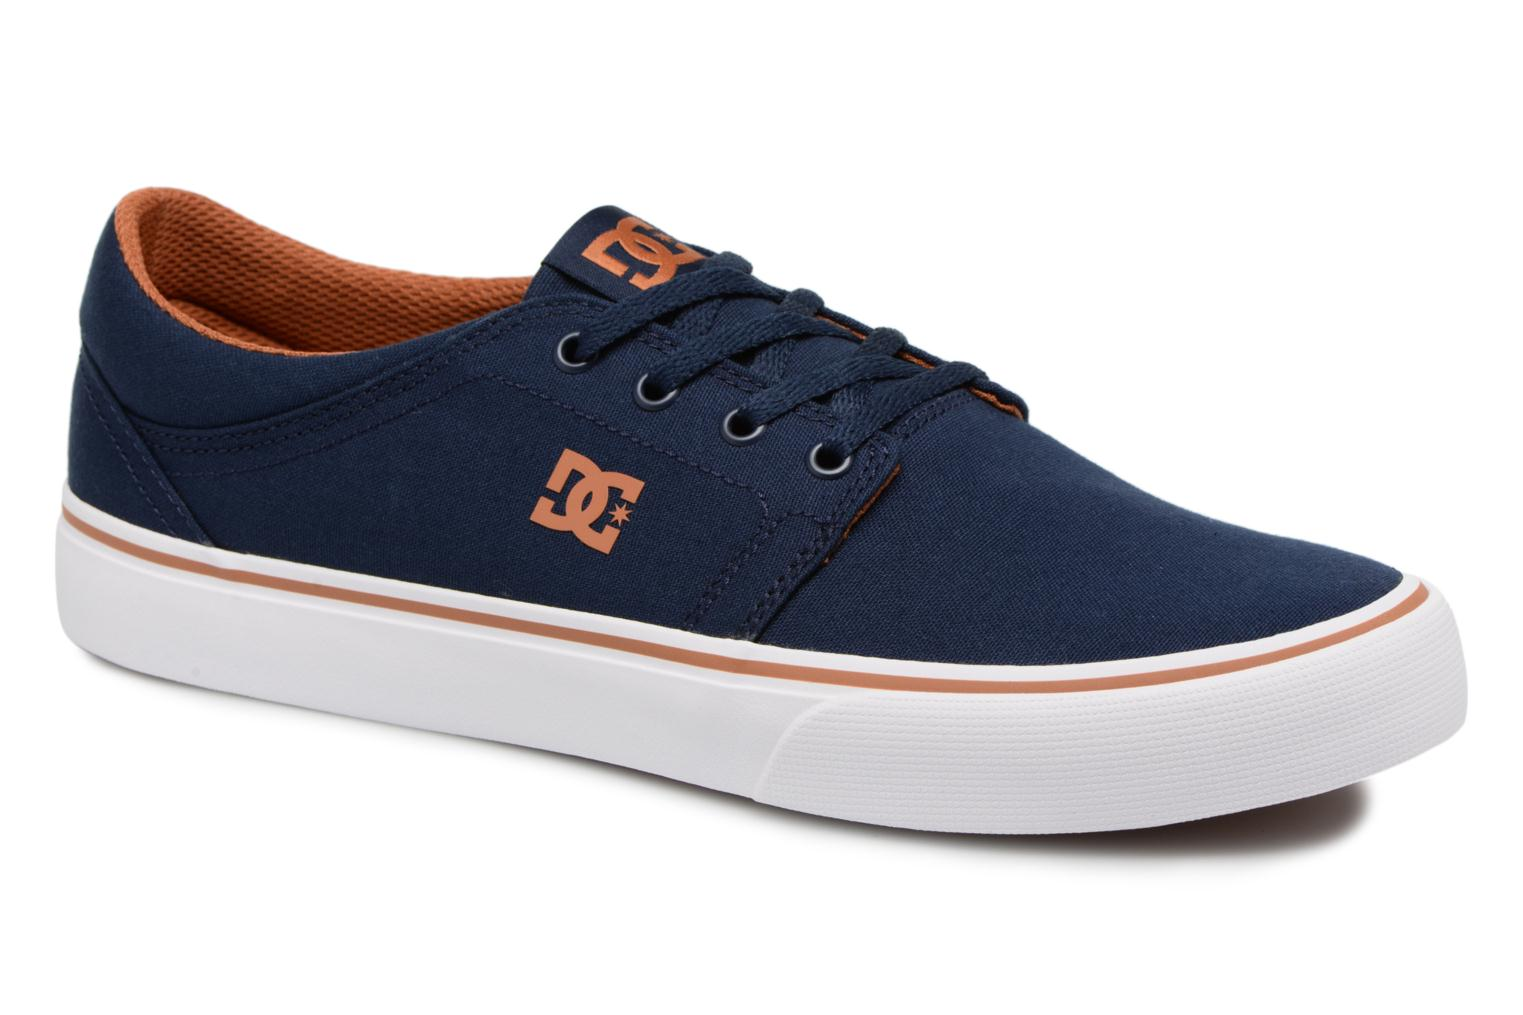 Trase Tx by DC Shoes